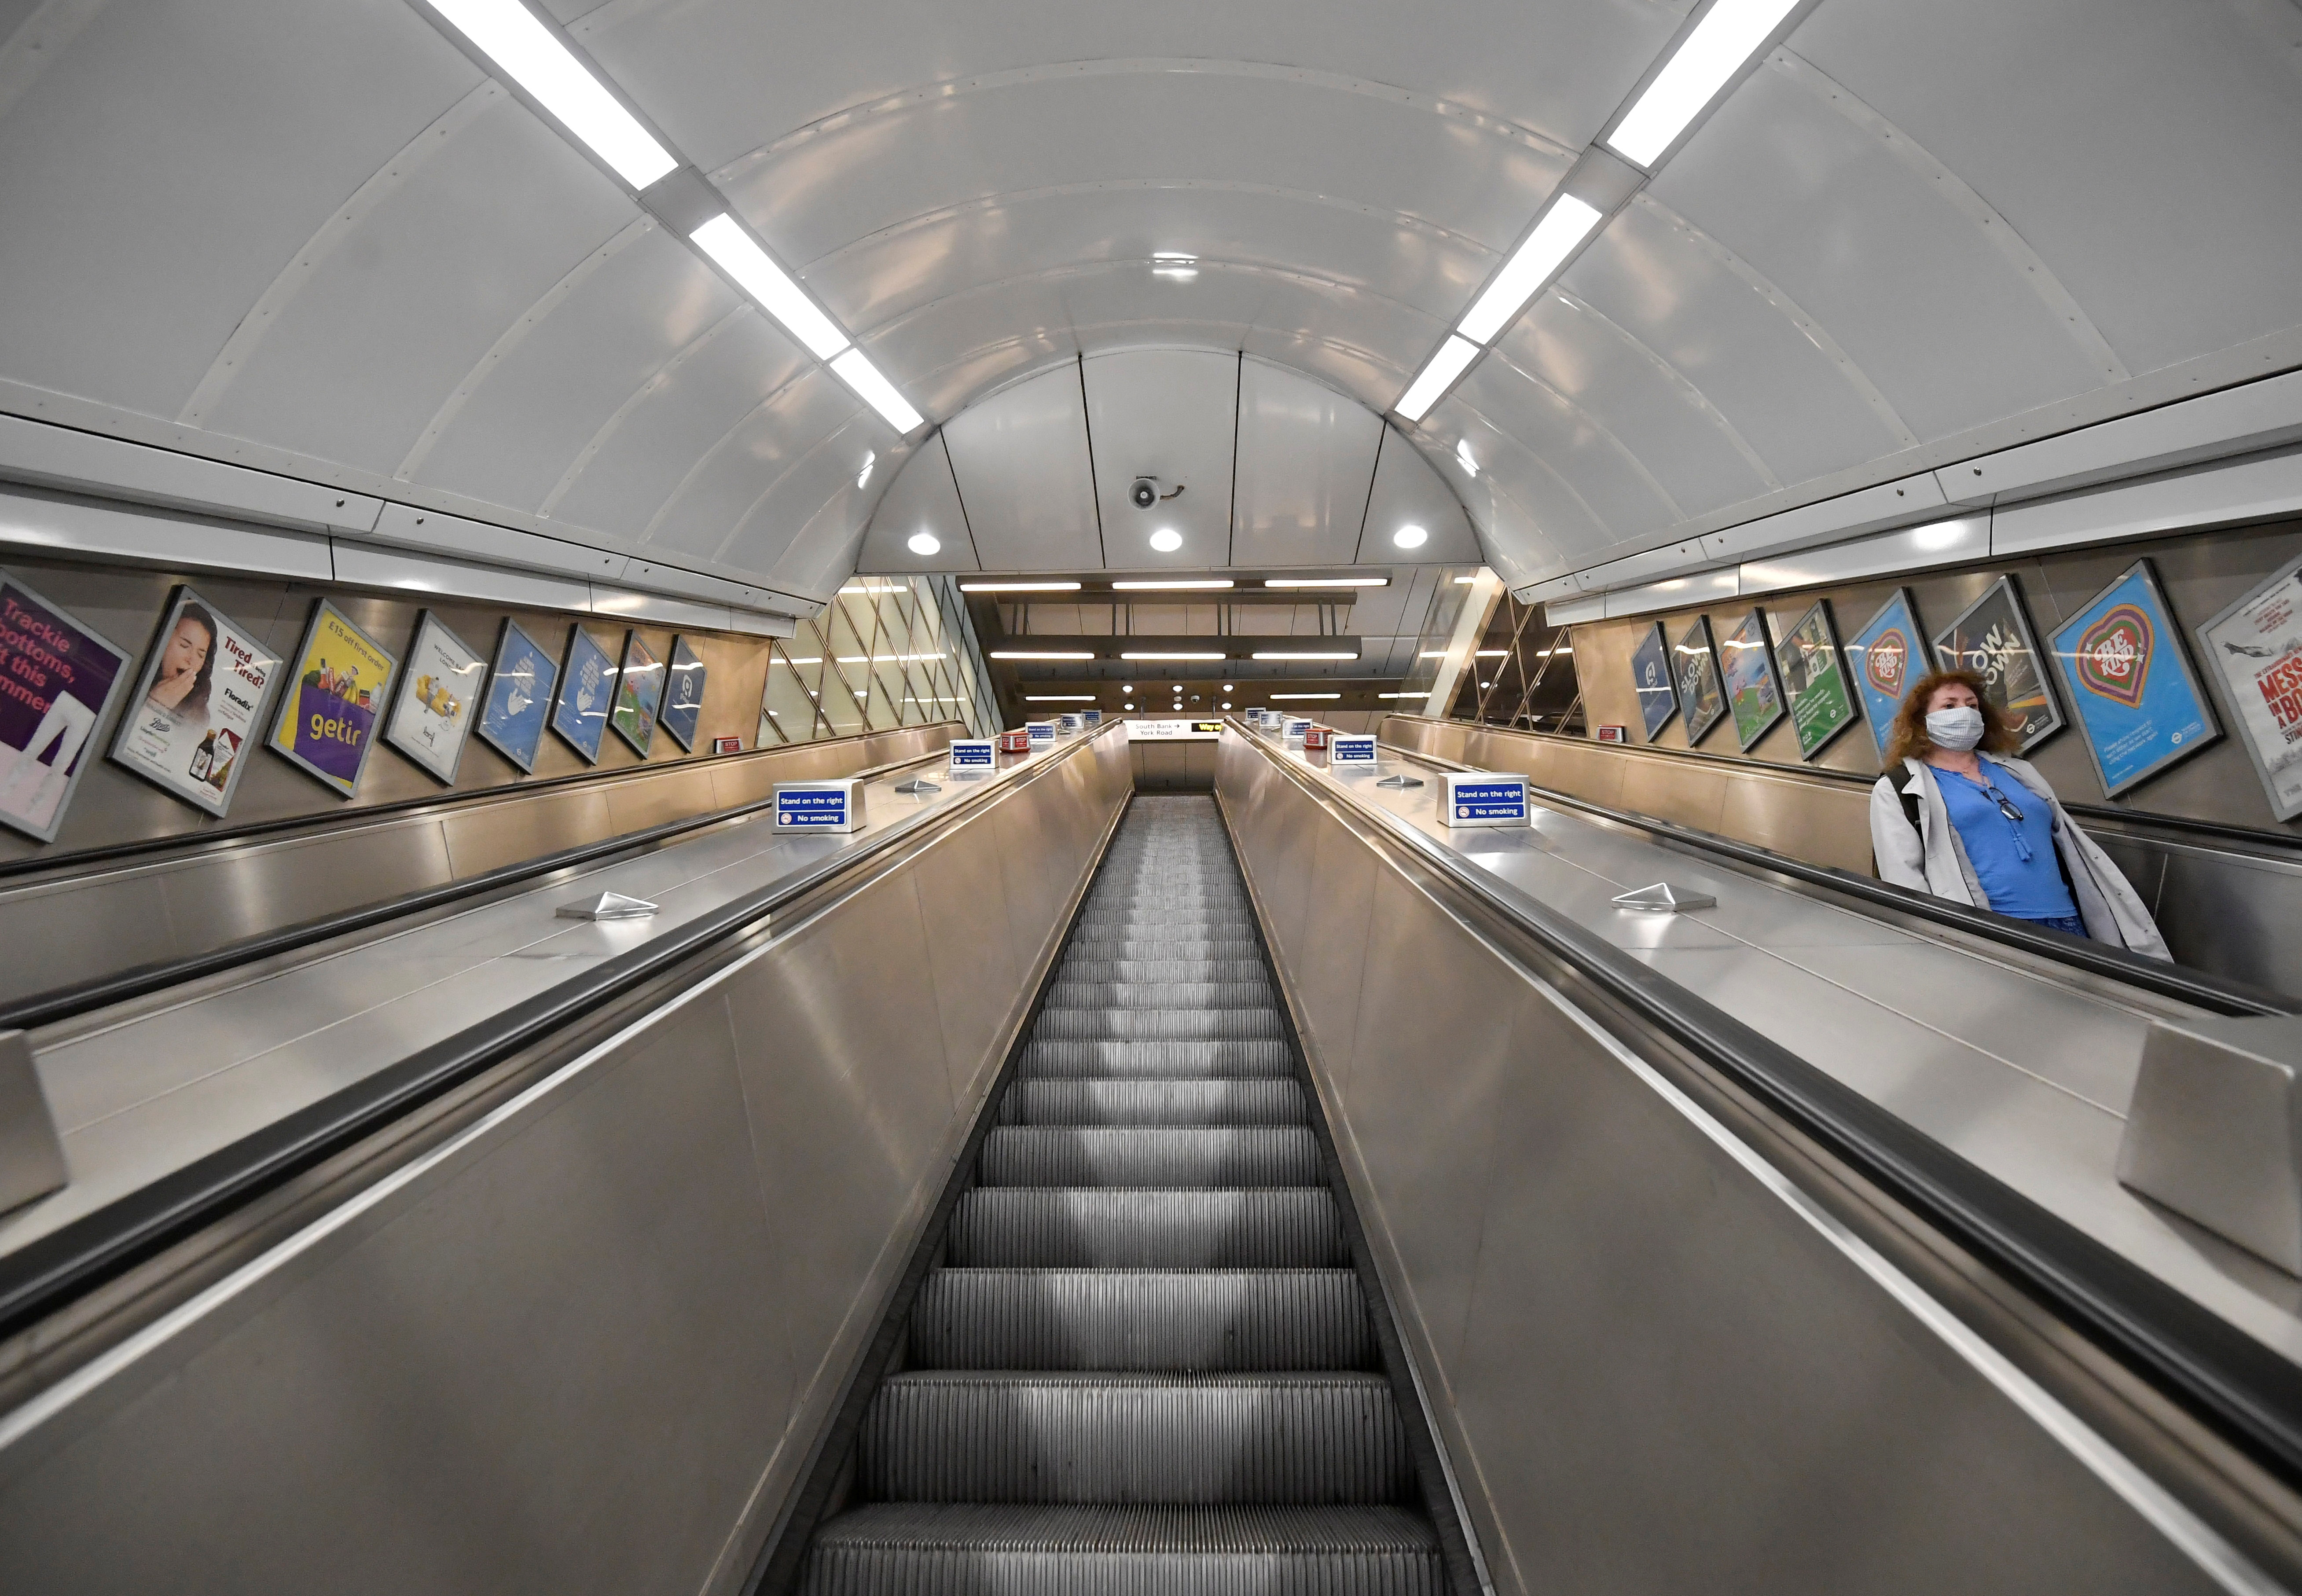 A passenger takes escalators on the London Underground tube train network, as lockdown restrictions continue to ease amidst the spread of the coronavirus disease (COVID-19) pandemic, in London, Britain May 28, 2021. REUTERS/Toby Melville